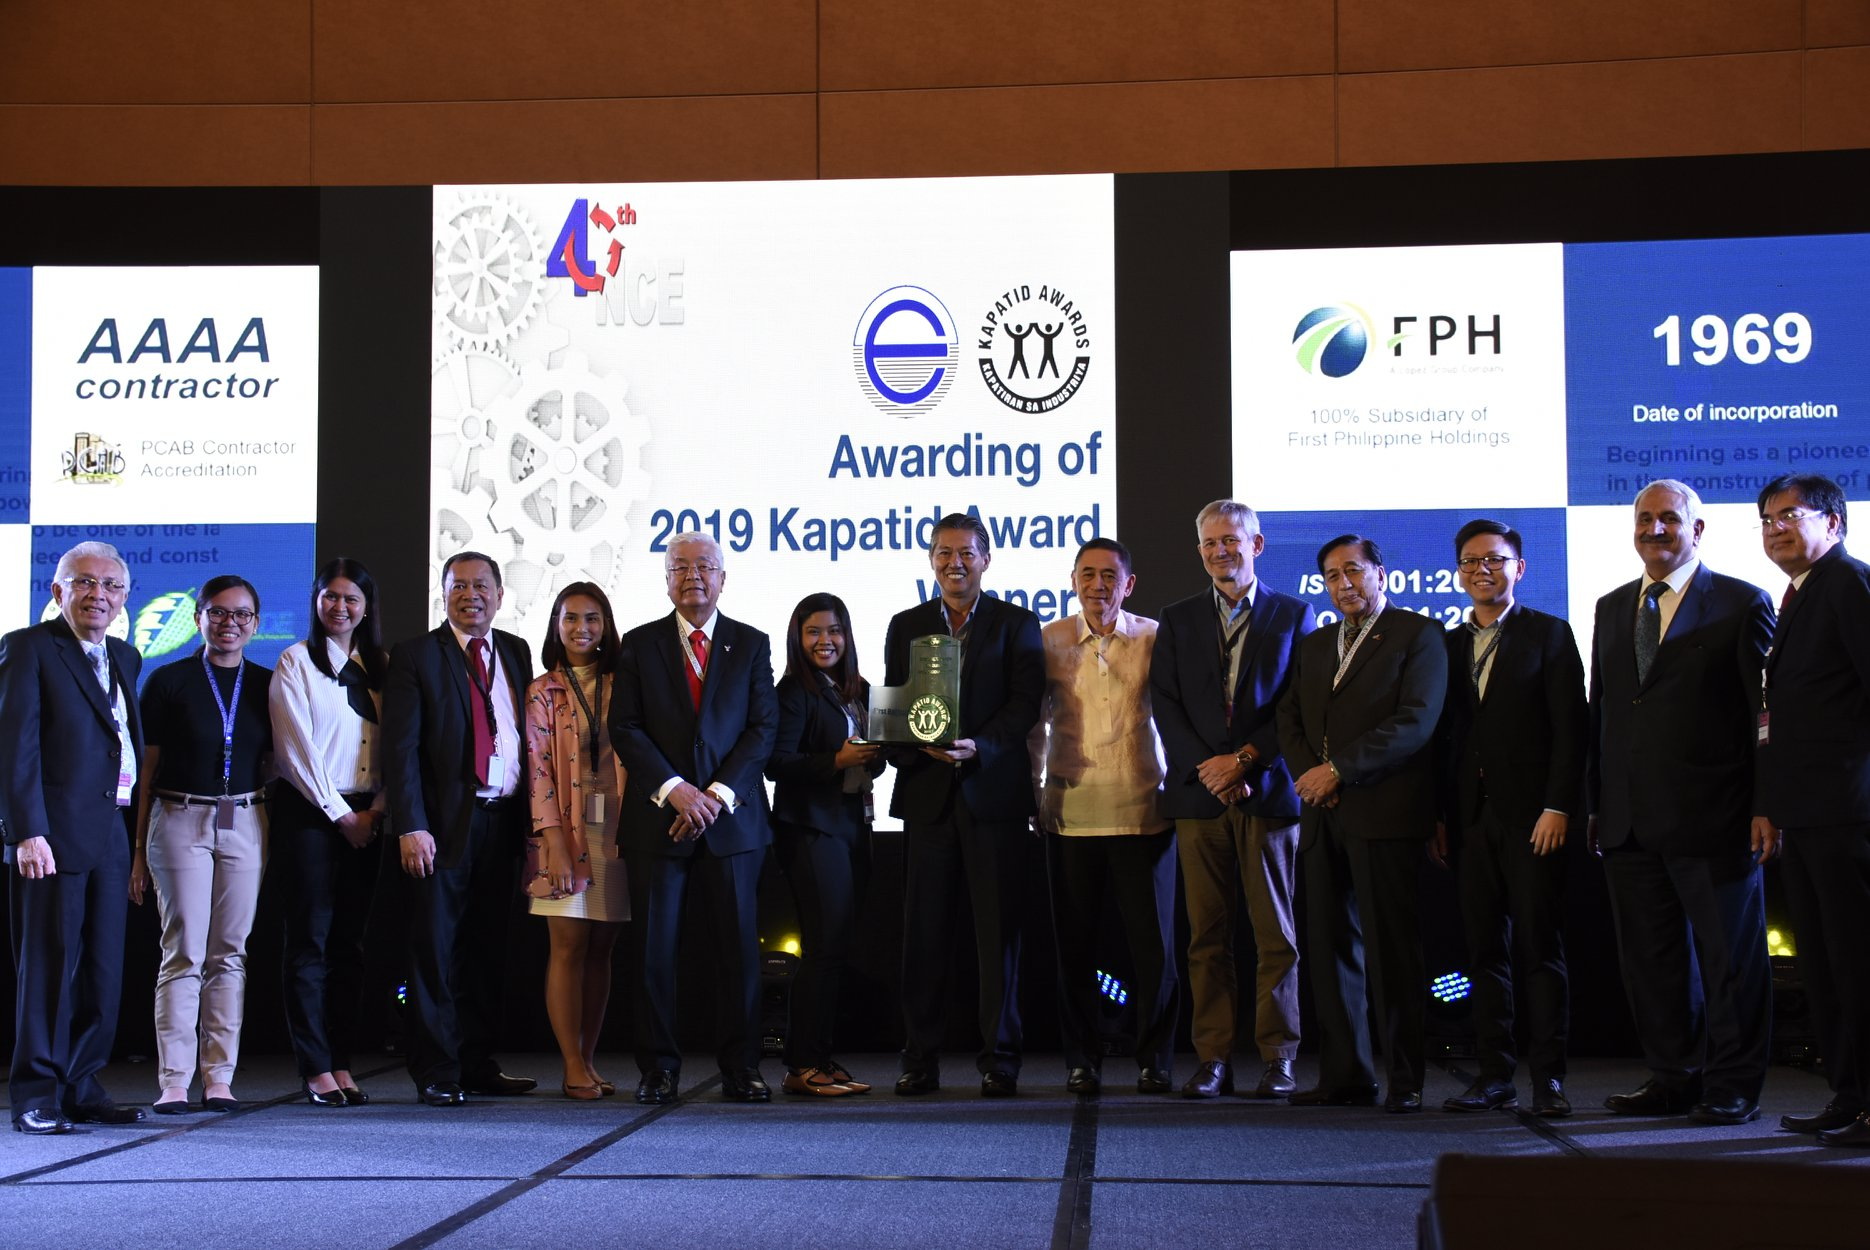 First Balfour wins special citation in KAPATID Awards